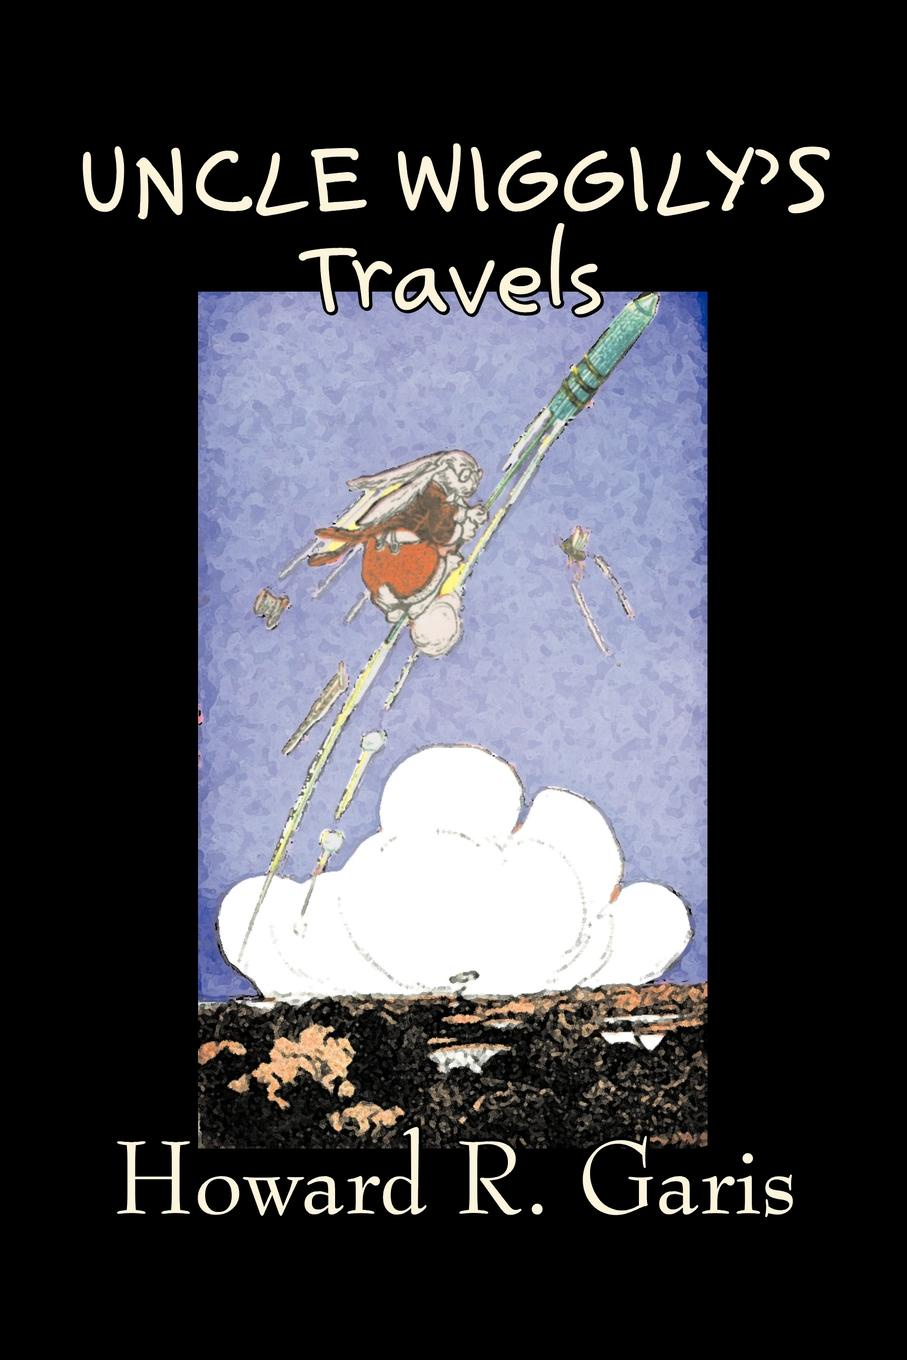 Howard R. Garis Uncle Wiggily's Travels by Howard R. Garis, Fiction, Fantasy & Magic, Animals